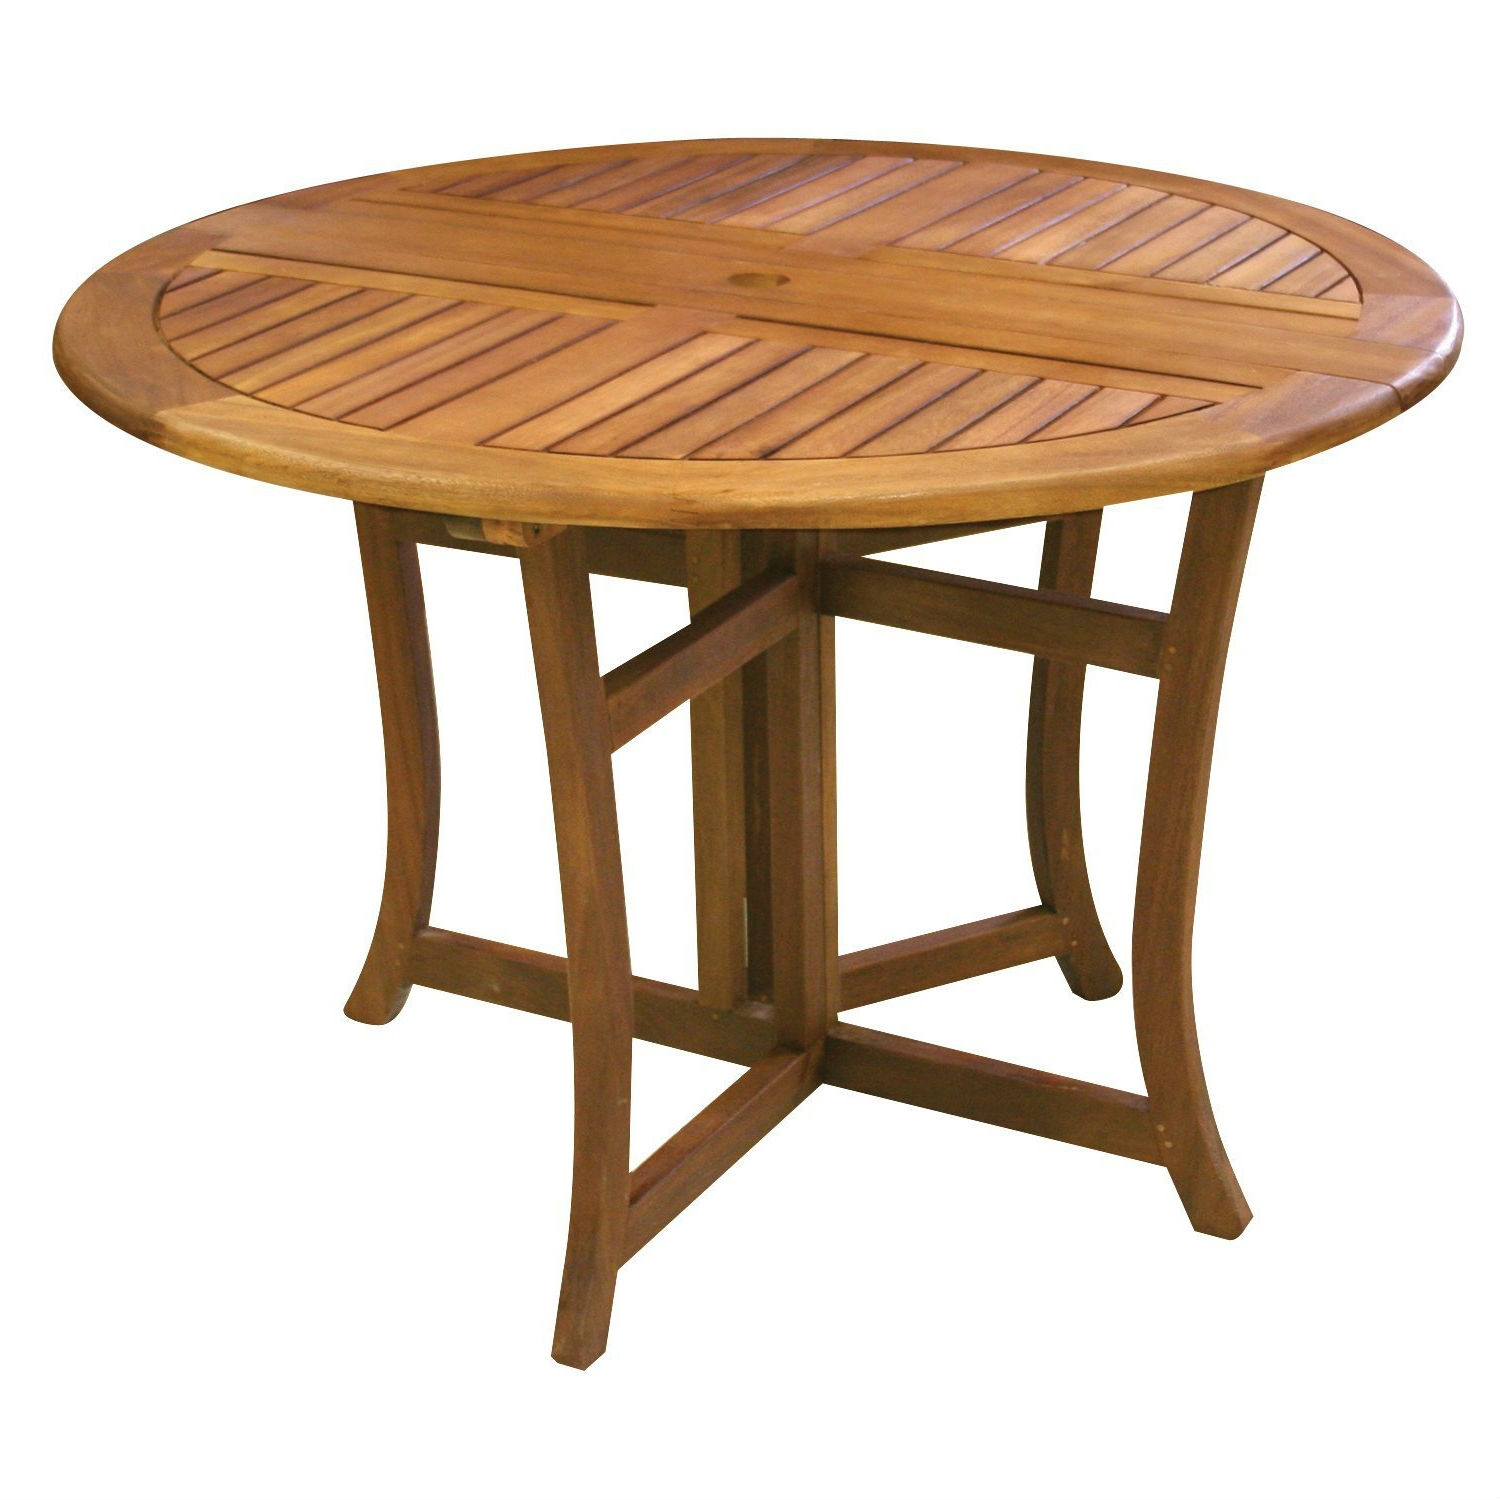 Outdoor Folding Wood Patio Dining Table 43 Inch Round With Umbrella Hole Fastfurnishings Com